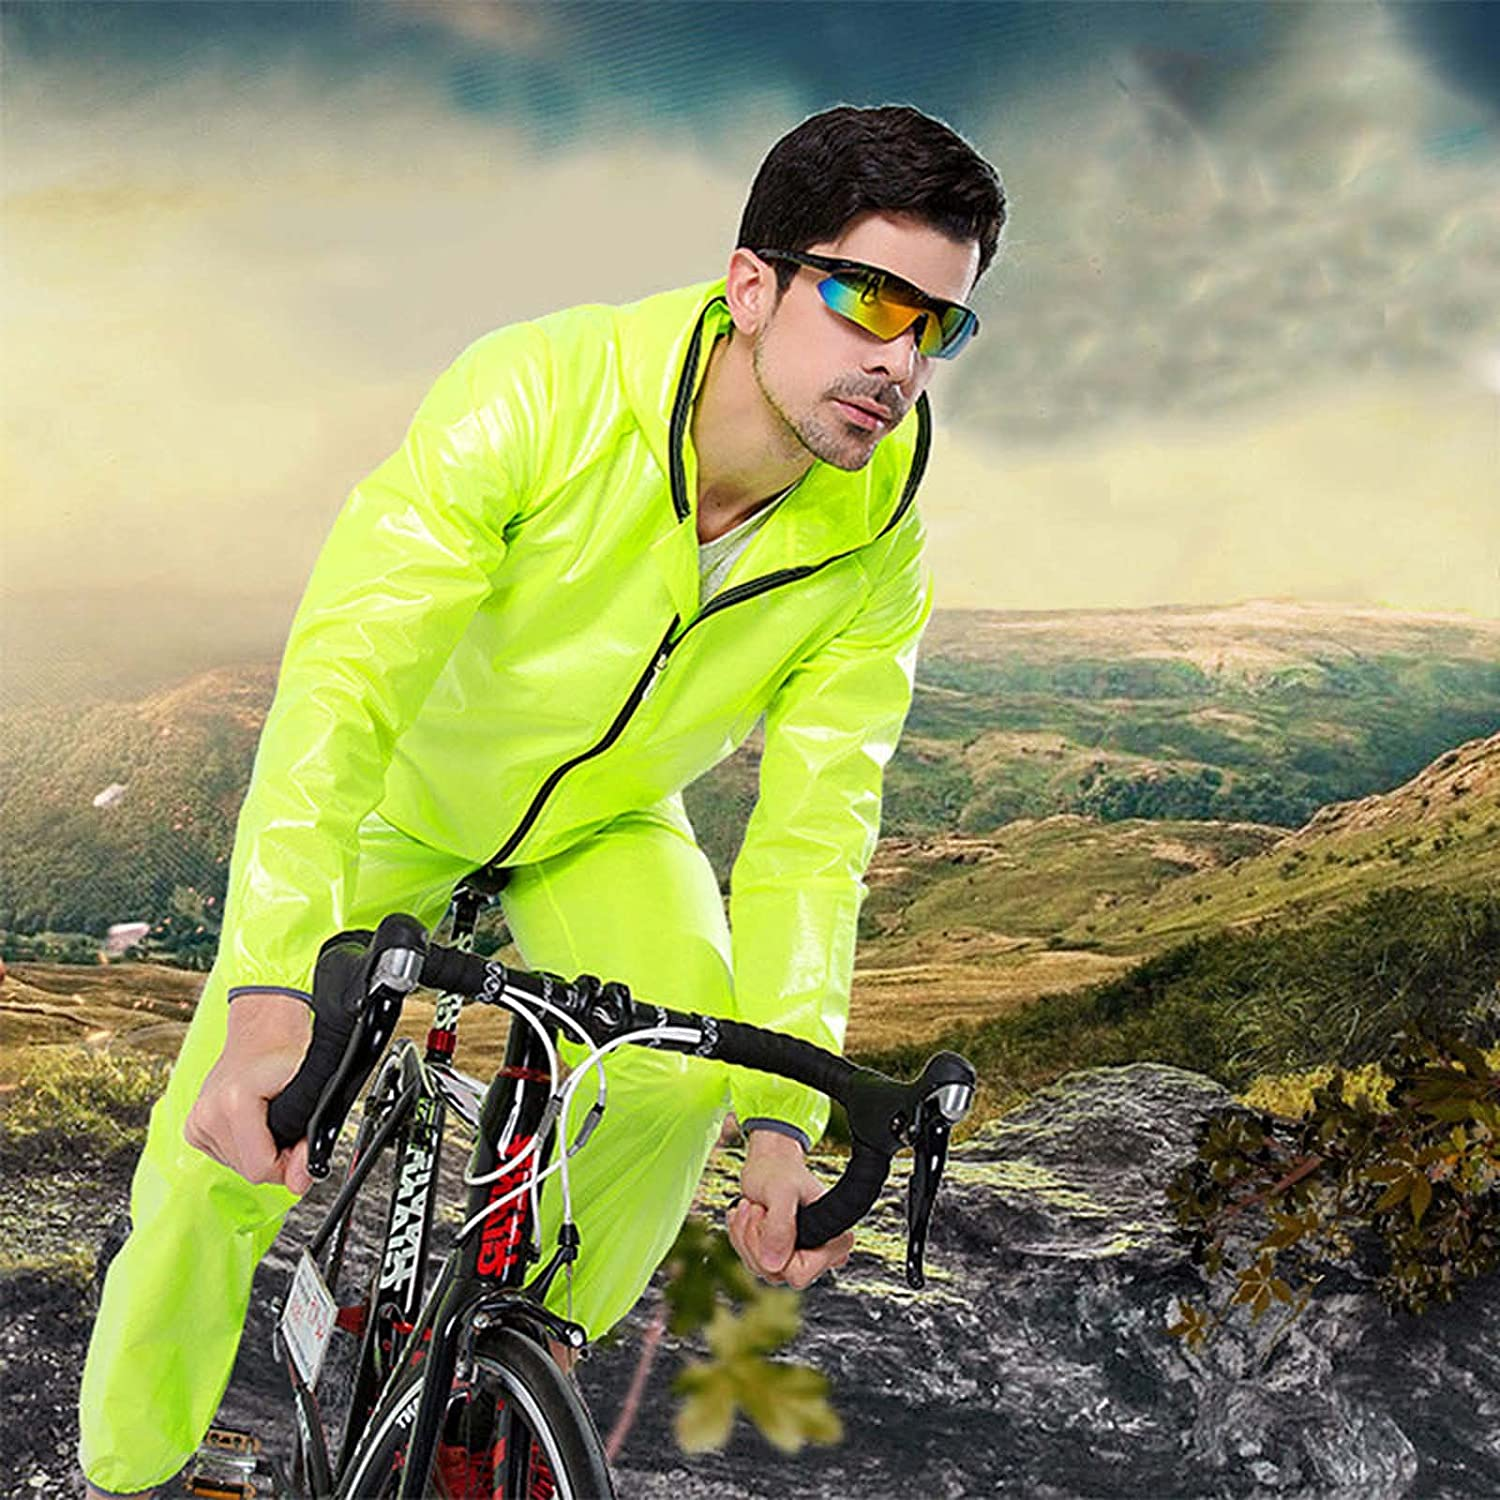 FHGH Men's Split Raincoat for Cycling, Portable Raincoat and Trousers Set, for Riding, Hiking and Traveling,D,Small